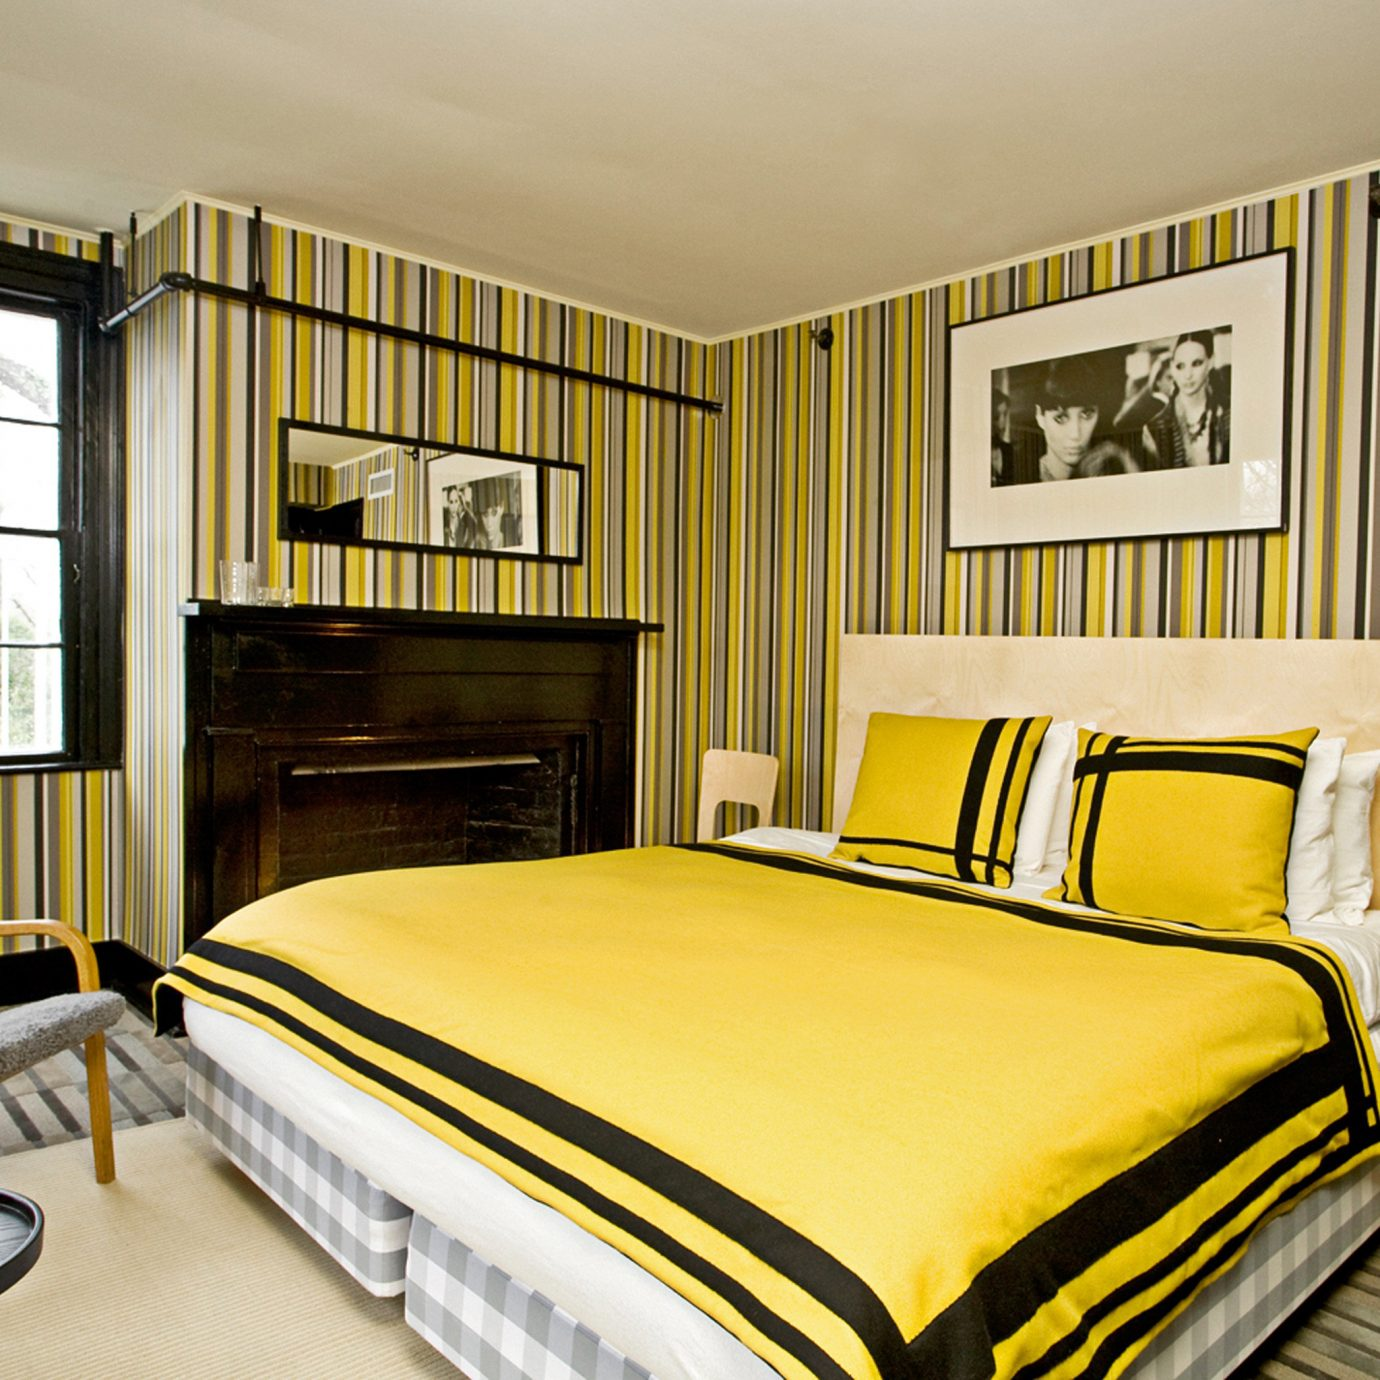 B&B Bedroom Boutique Family Hip Outdoor Activities yellow property home Suite bed sheet bed frame living room